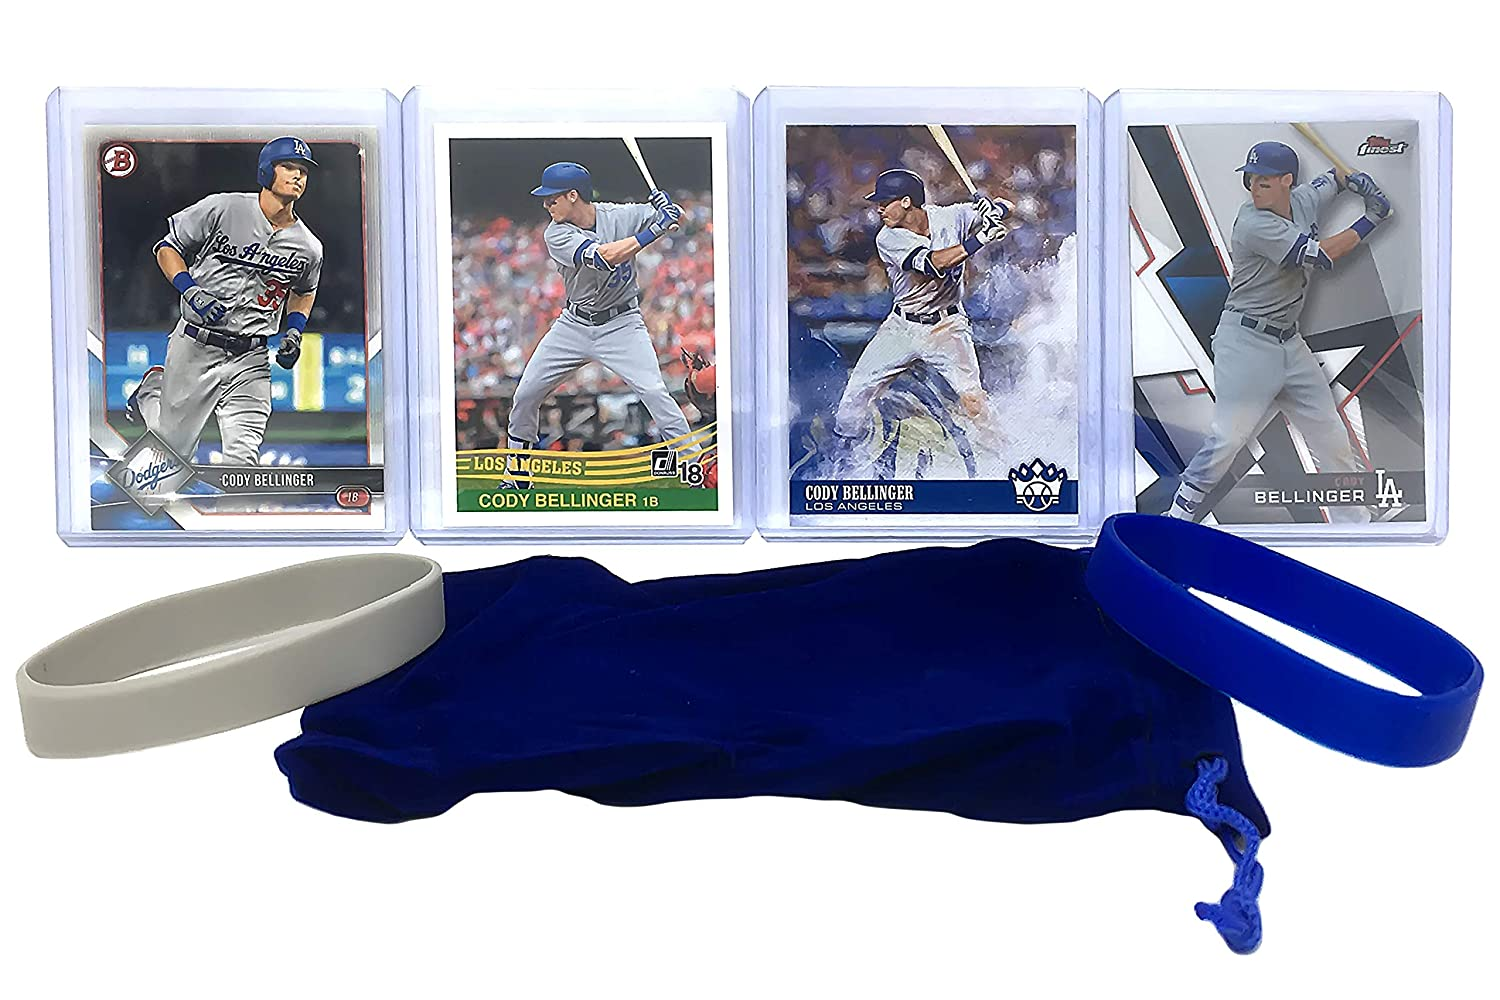 Cody Bellinger Baseball Cards (4) ASSORTED Los Angeles Dodgers Trading Card and Wristbands Gift Bundle Panini Bowman Topps